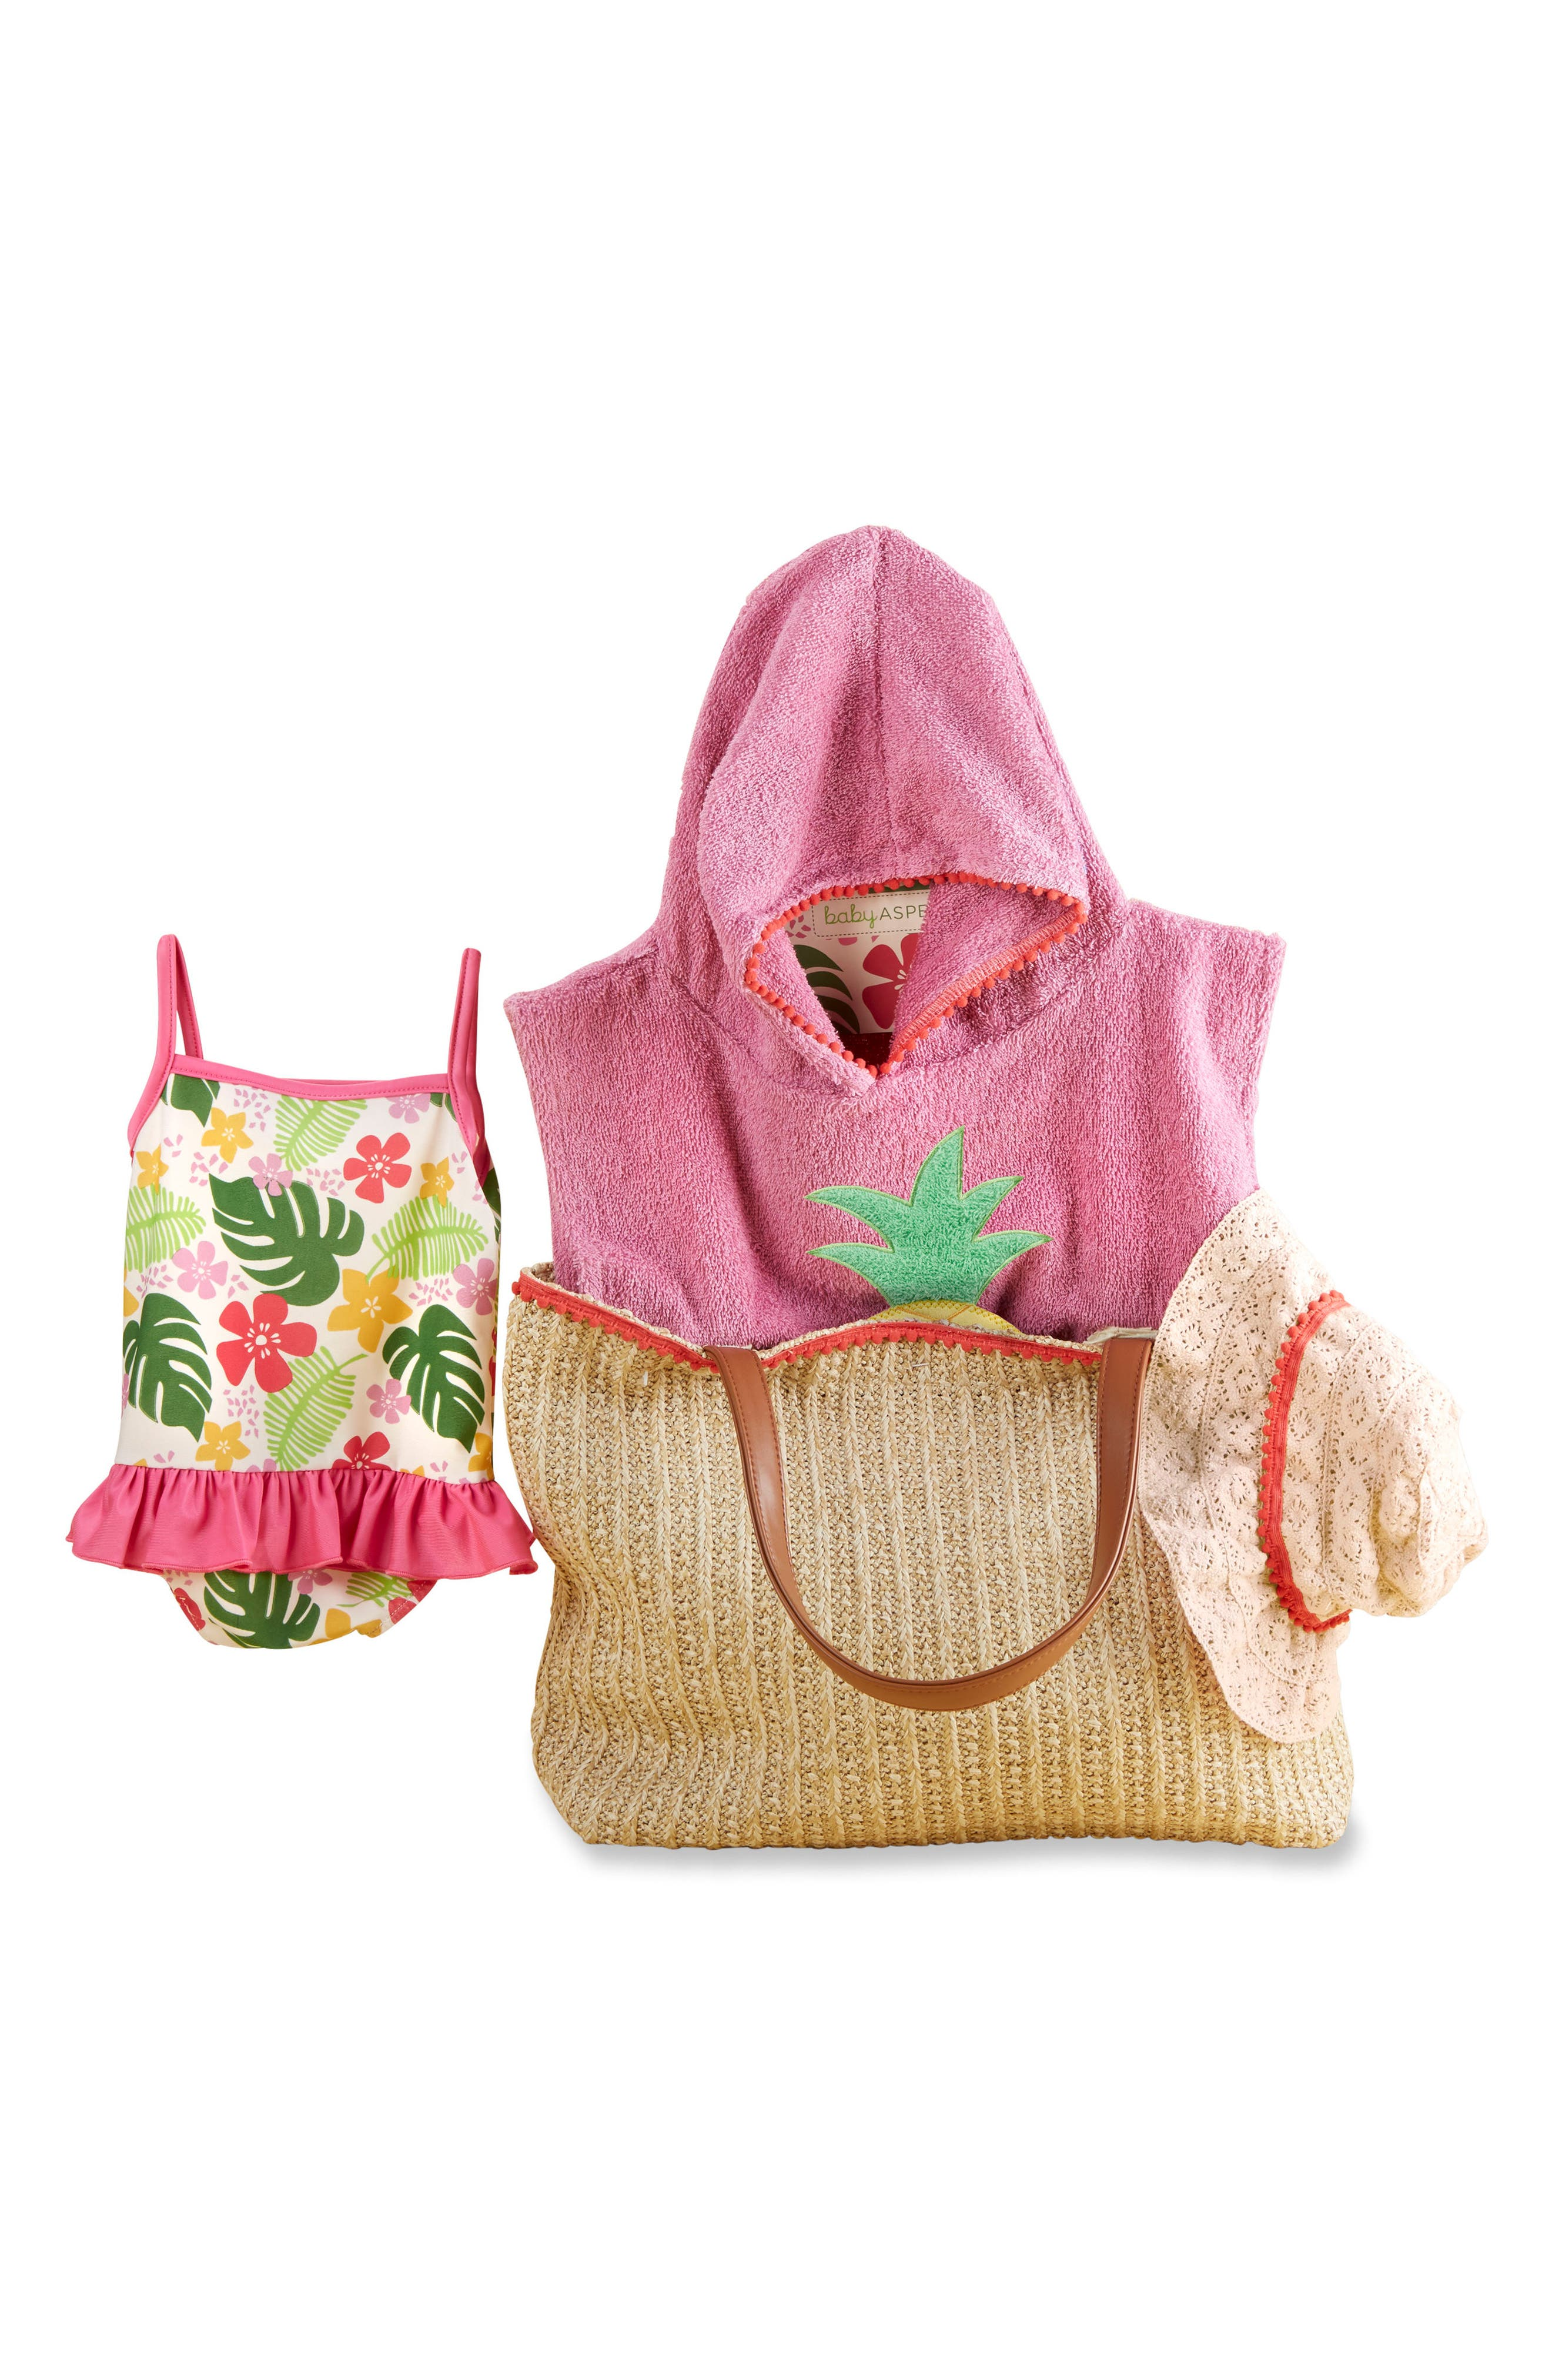 Baby Aspen Tropical Hooded Towel, Swimsuit, Sun Hat & Tote Set (Baby)